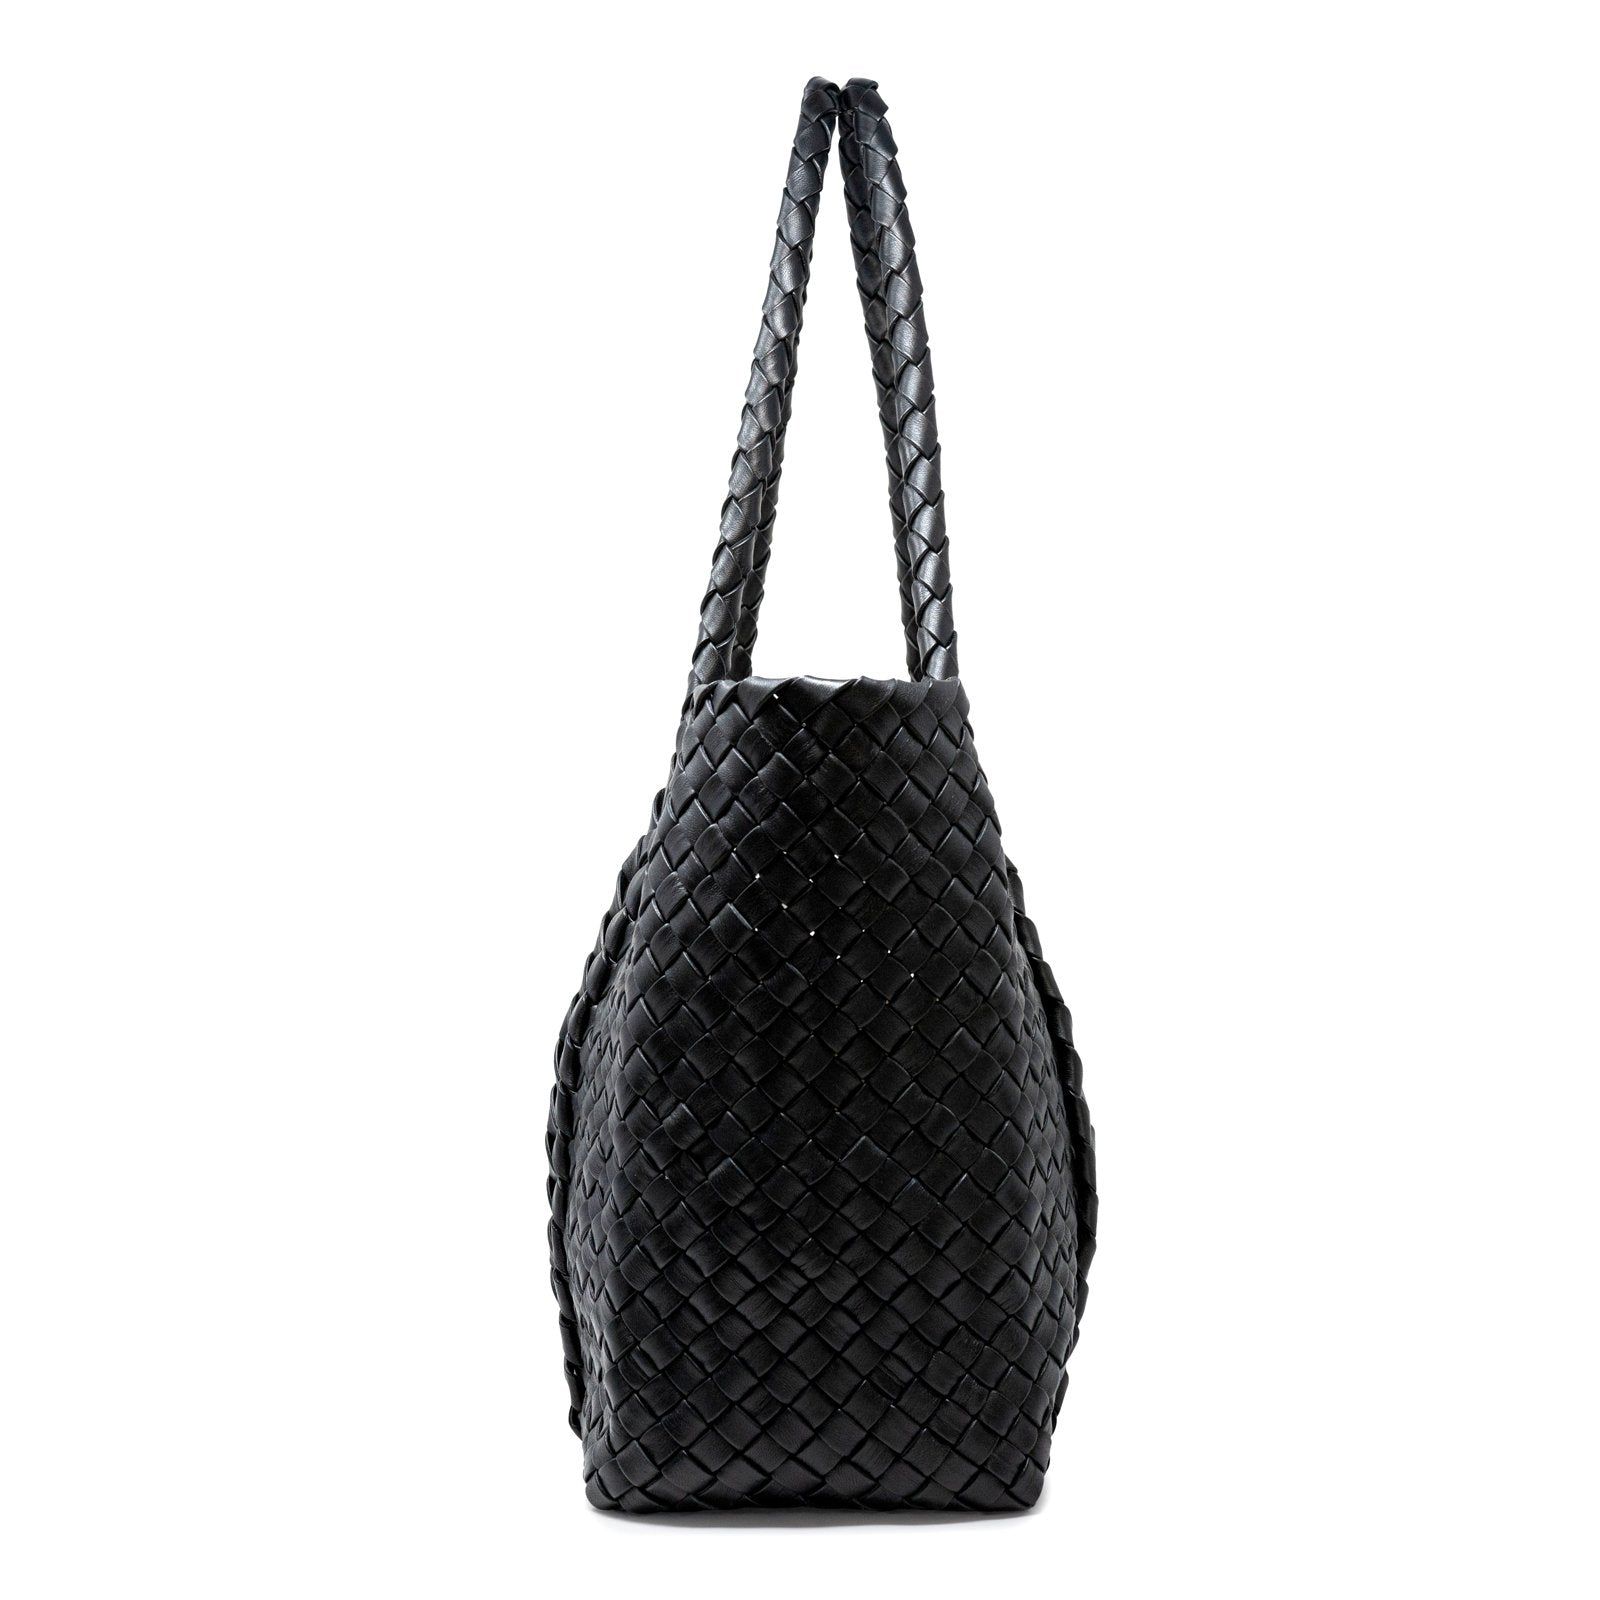 Infinity Intrecciato Women Leather Large Tote Bag in Black - Jennifer Tattanelli